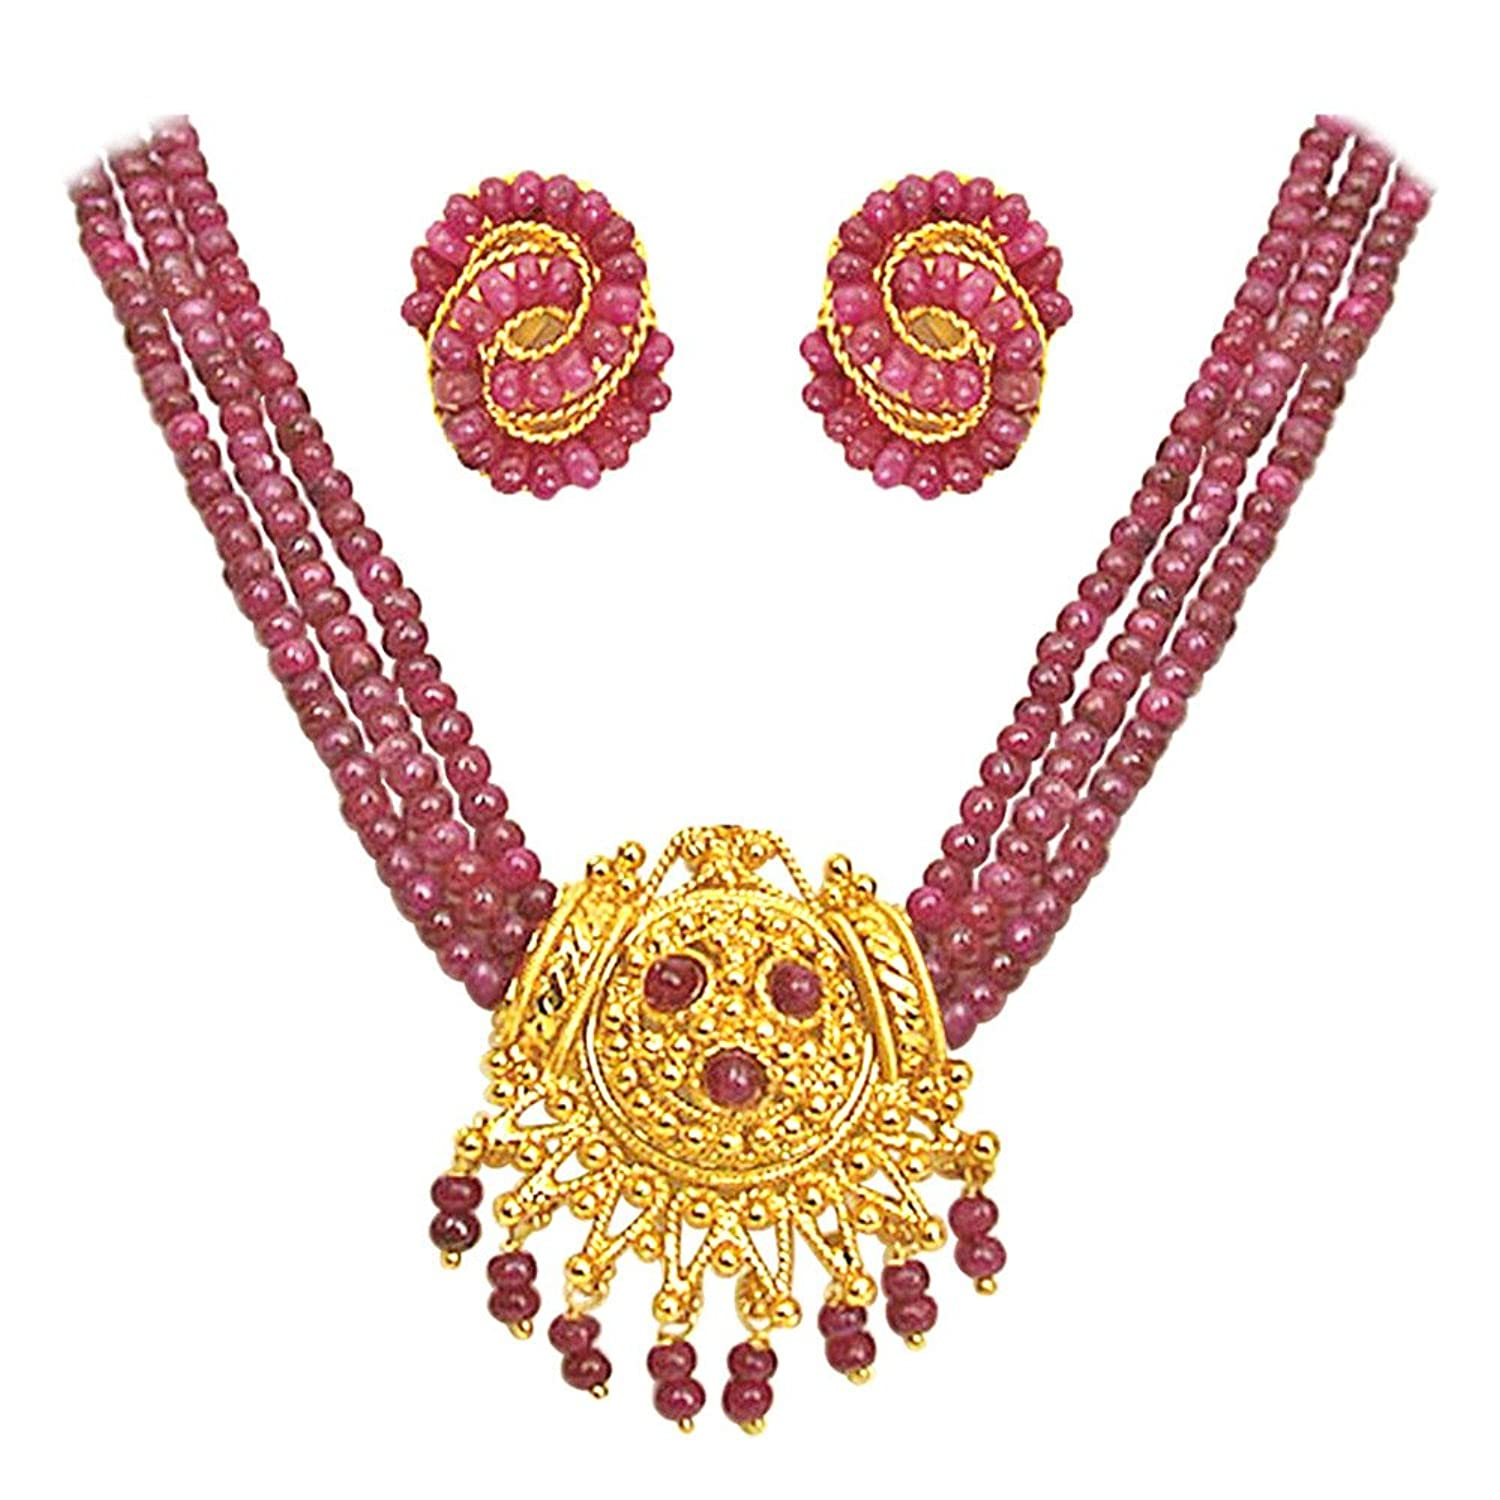 india heart crimson eton premium zarood from quality of fashion products the necklace